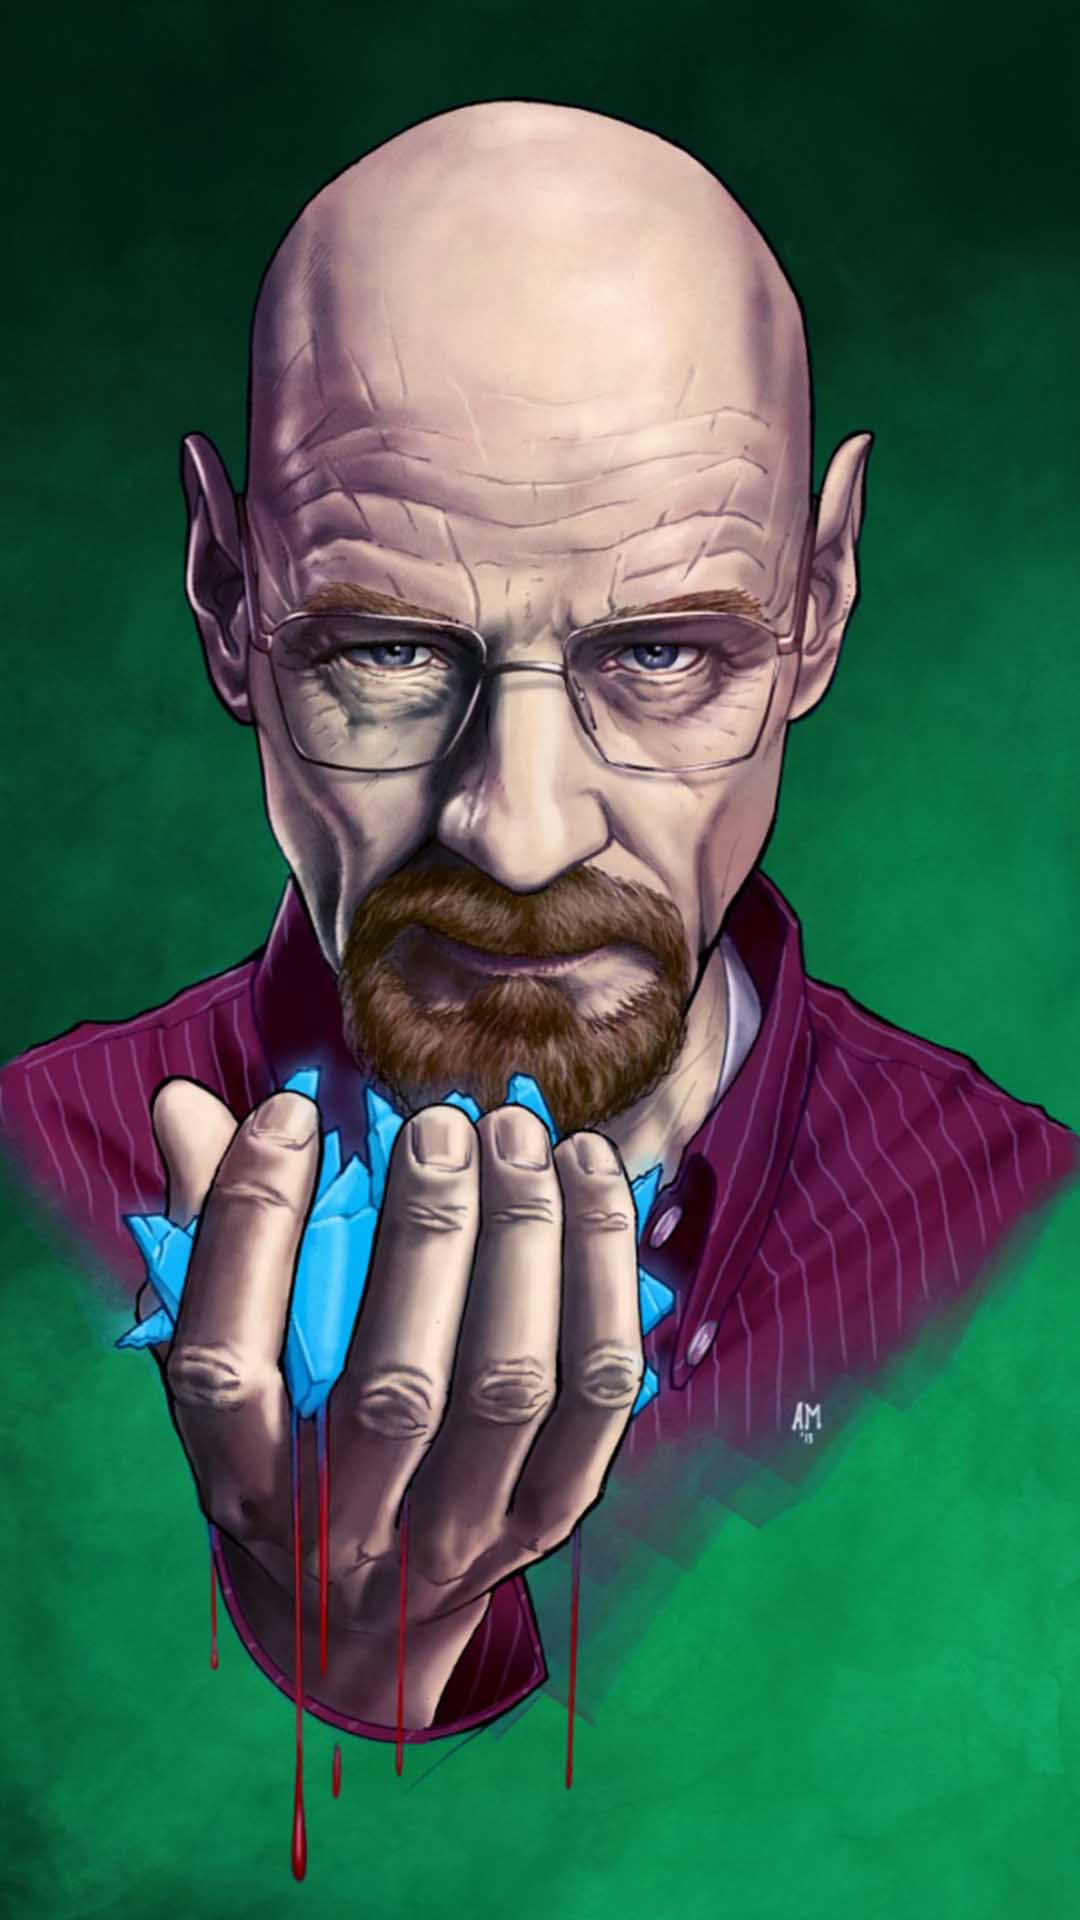 iPhone wallpaper breaking bad 1 Breaking Bad